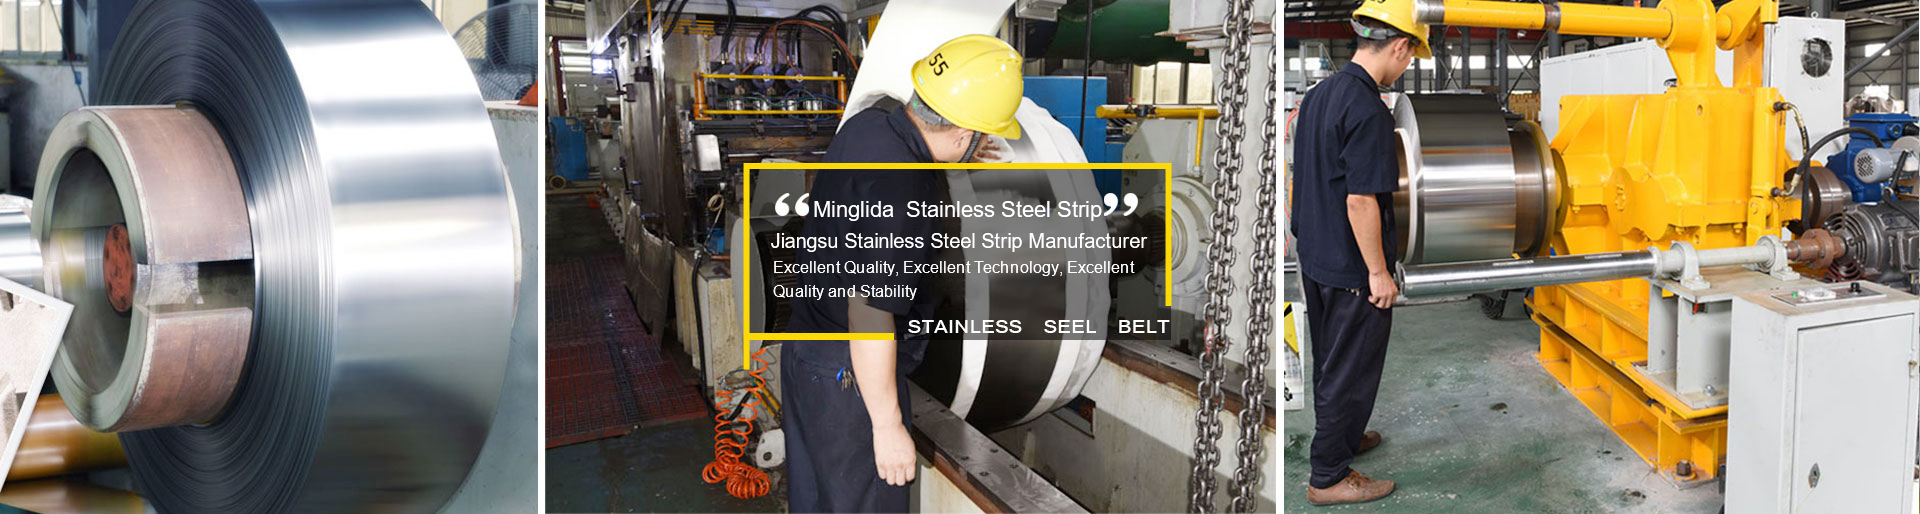 Stainless steel precision steel strip